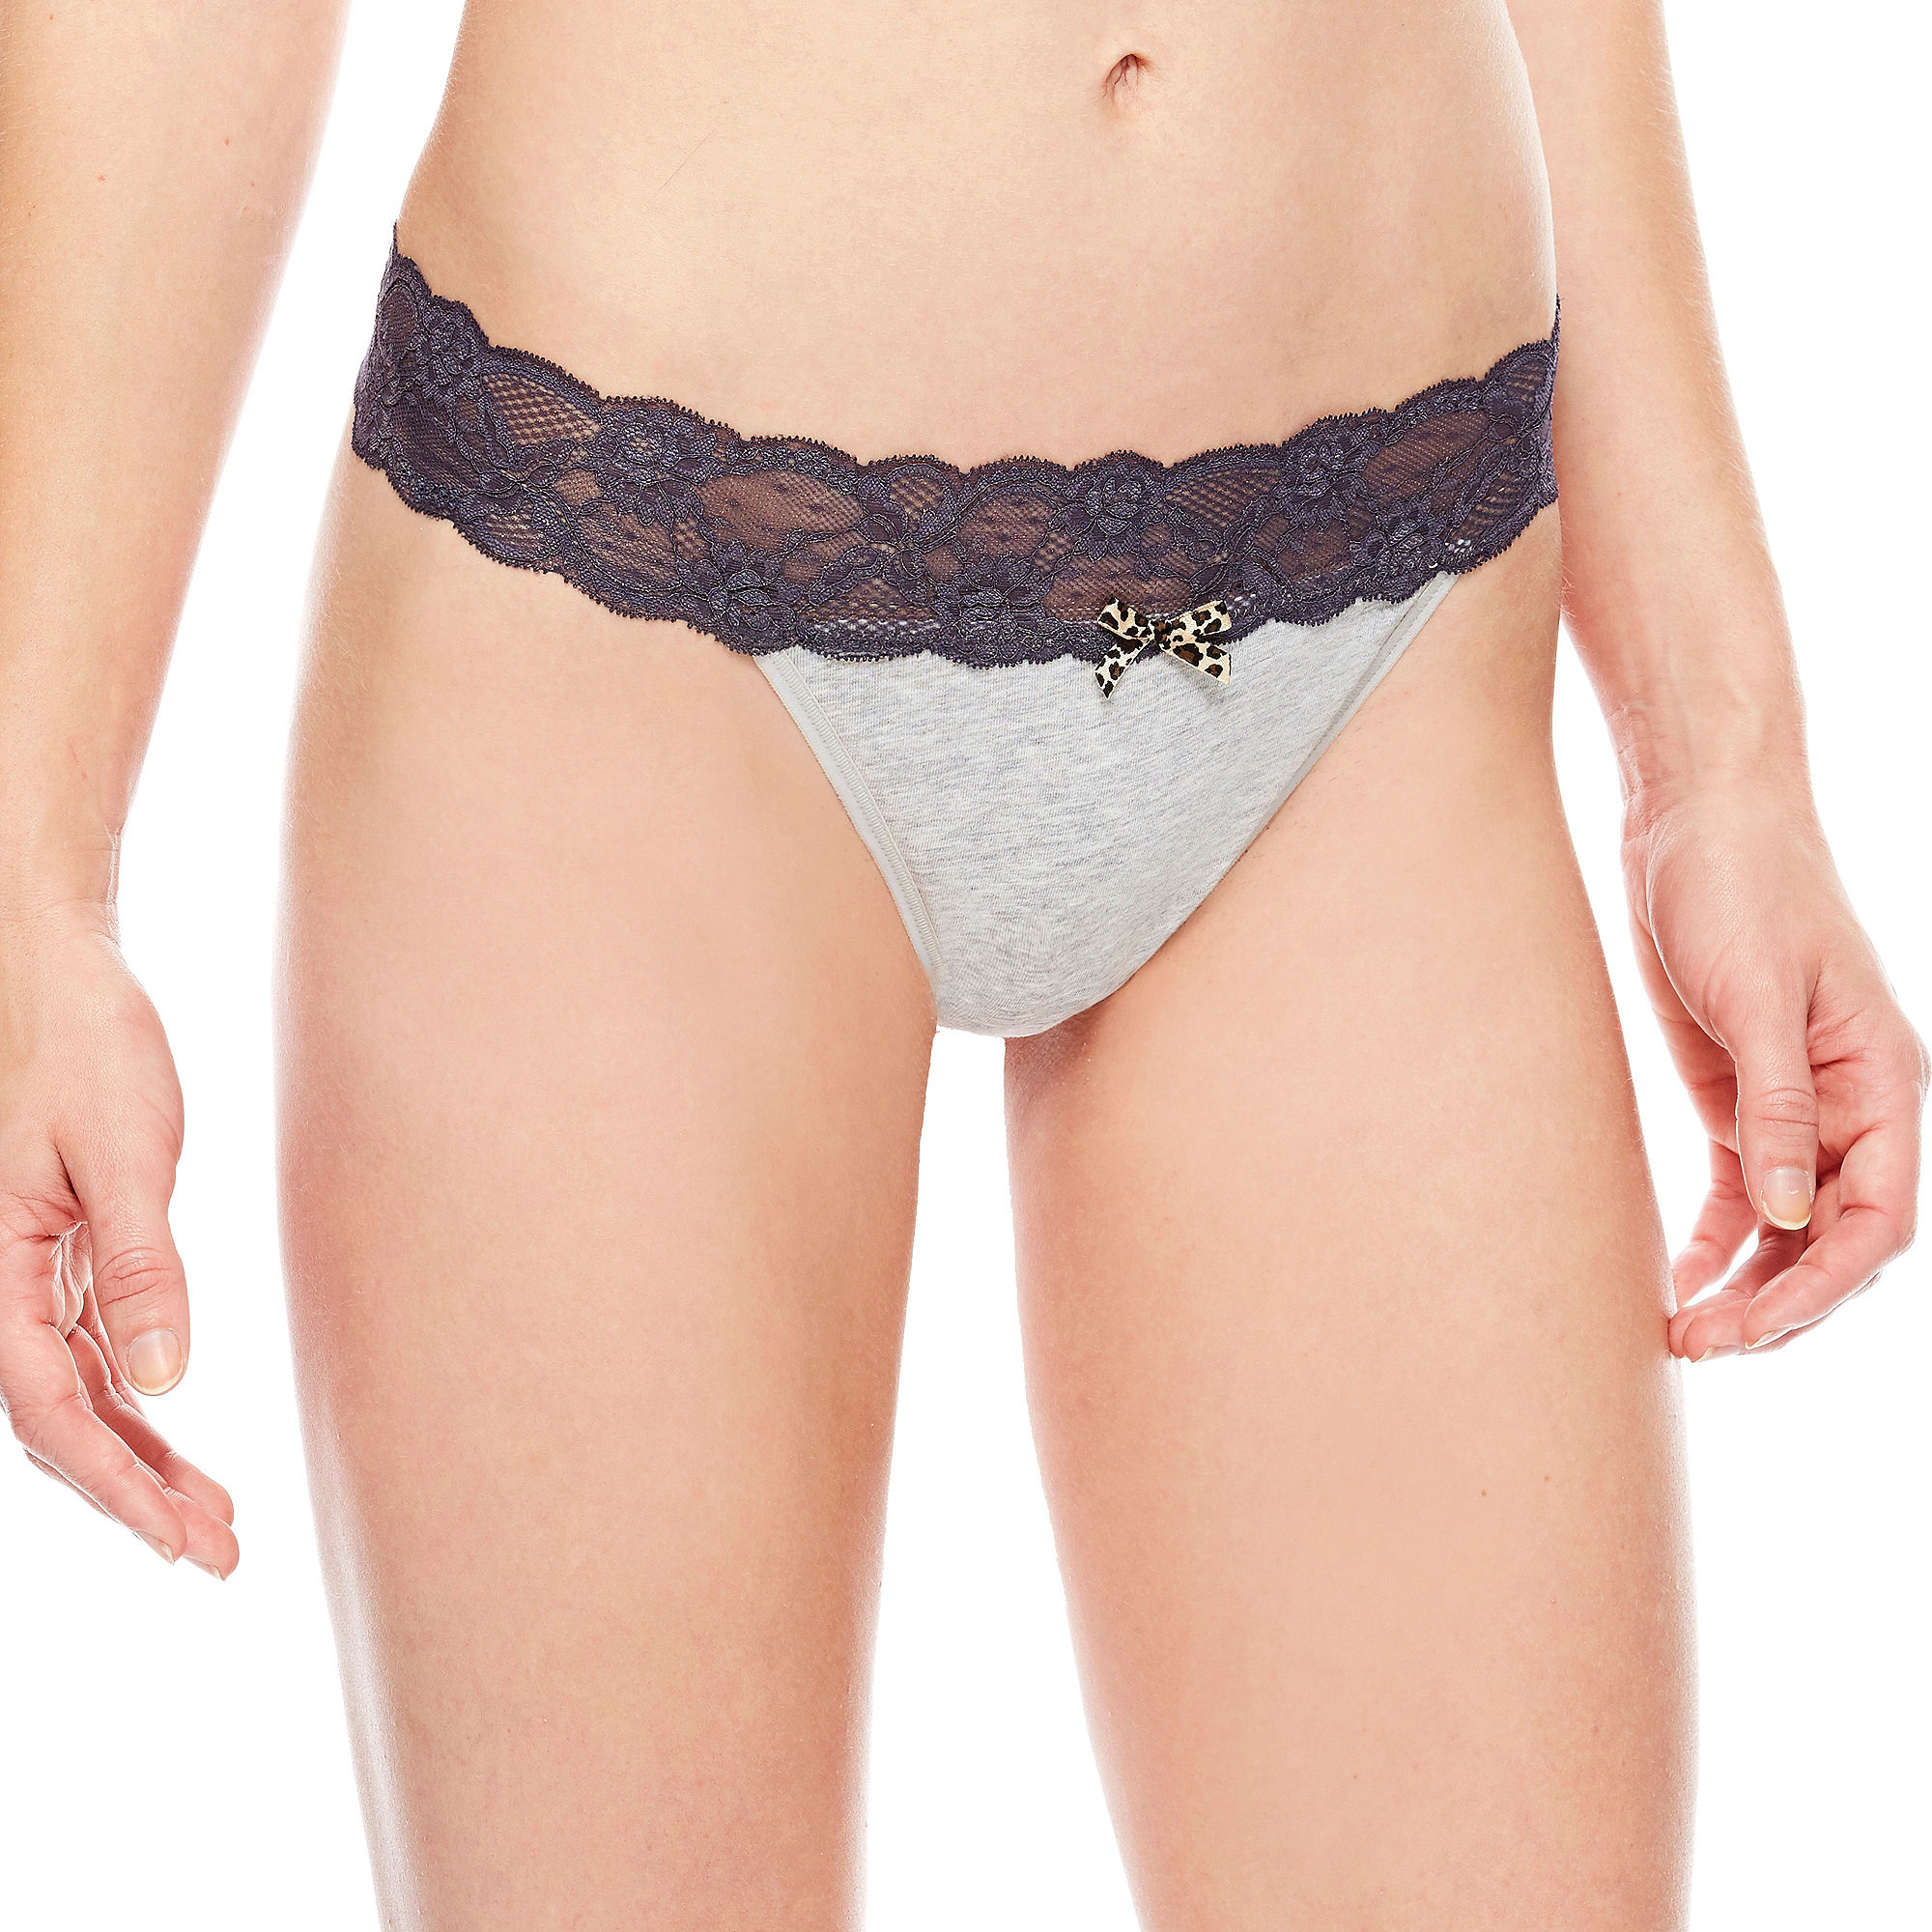 70eb3eb644a9 UPC 017911180059 product image for Ambrielle Lace-Trim Thong Panties |  upcitemdb.com